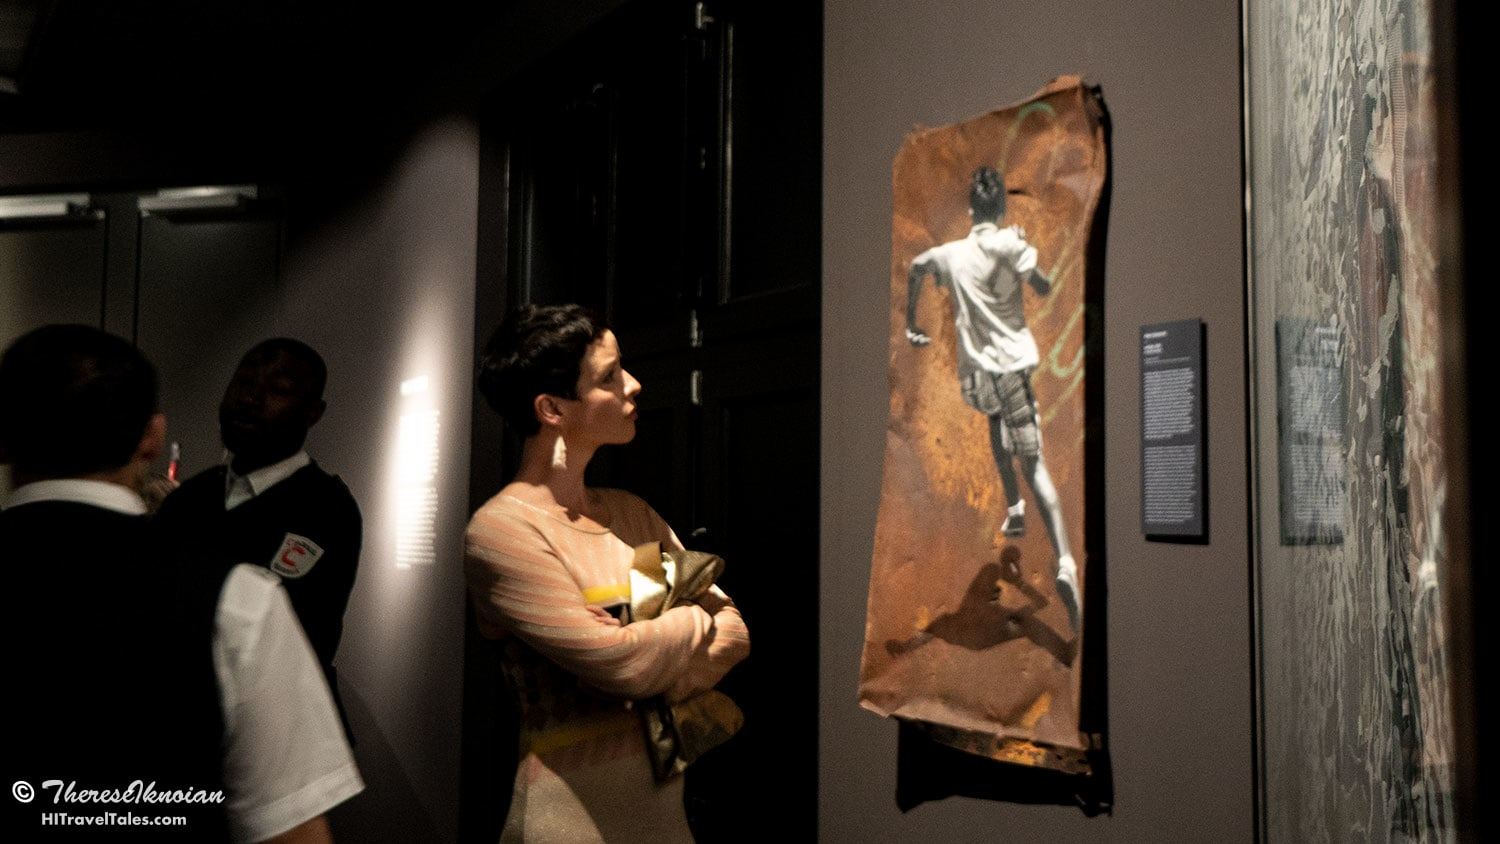 At the grand reopening of Urban Nation, a woman eyes a piece of art in one of the exhibit halls.